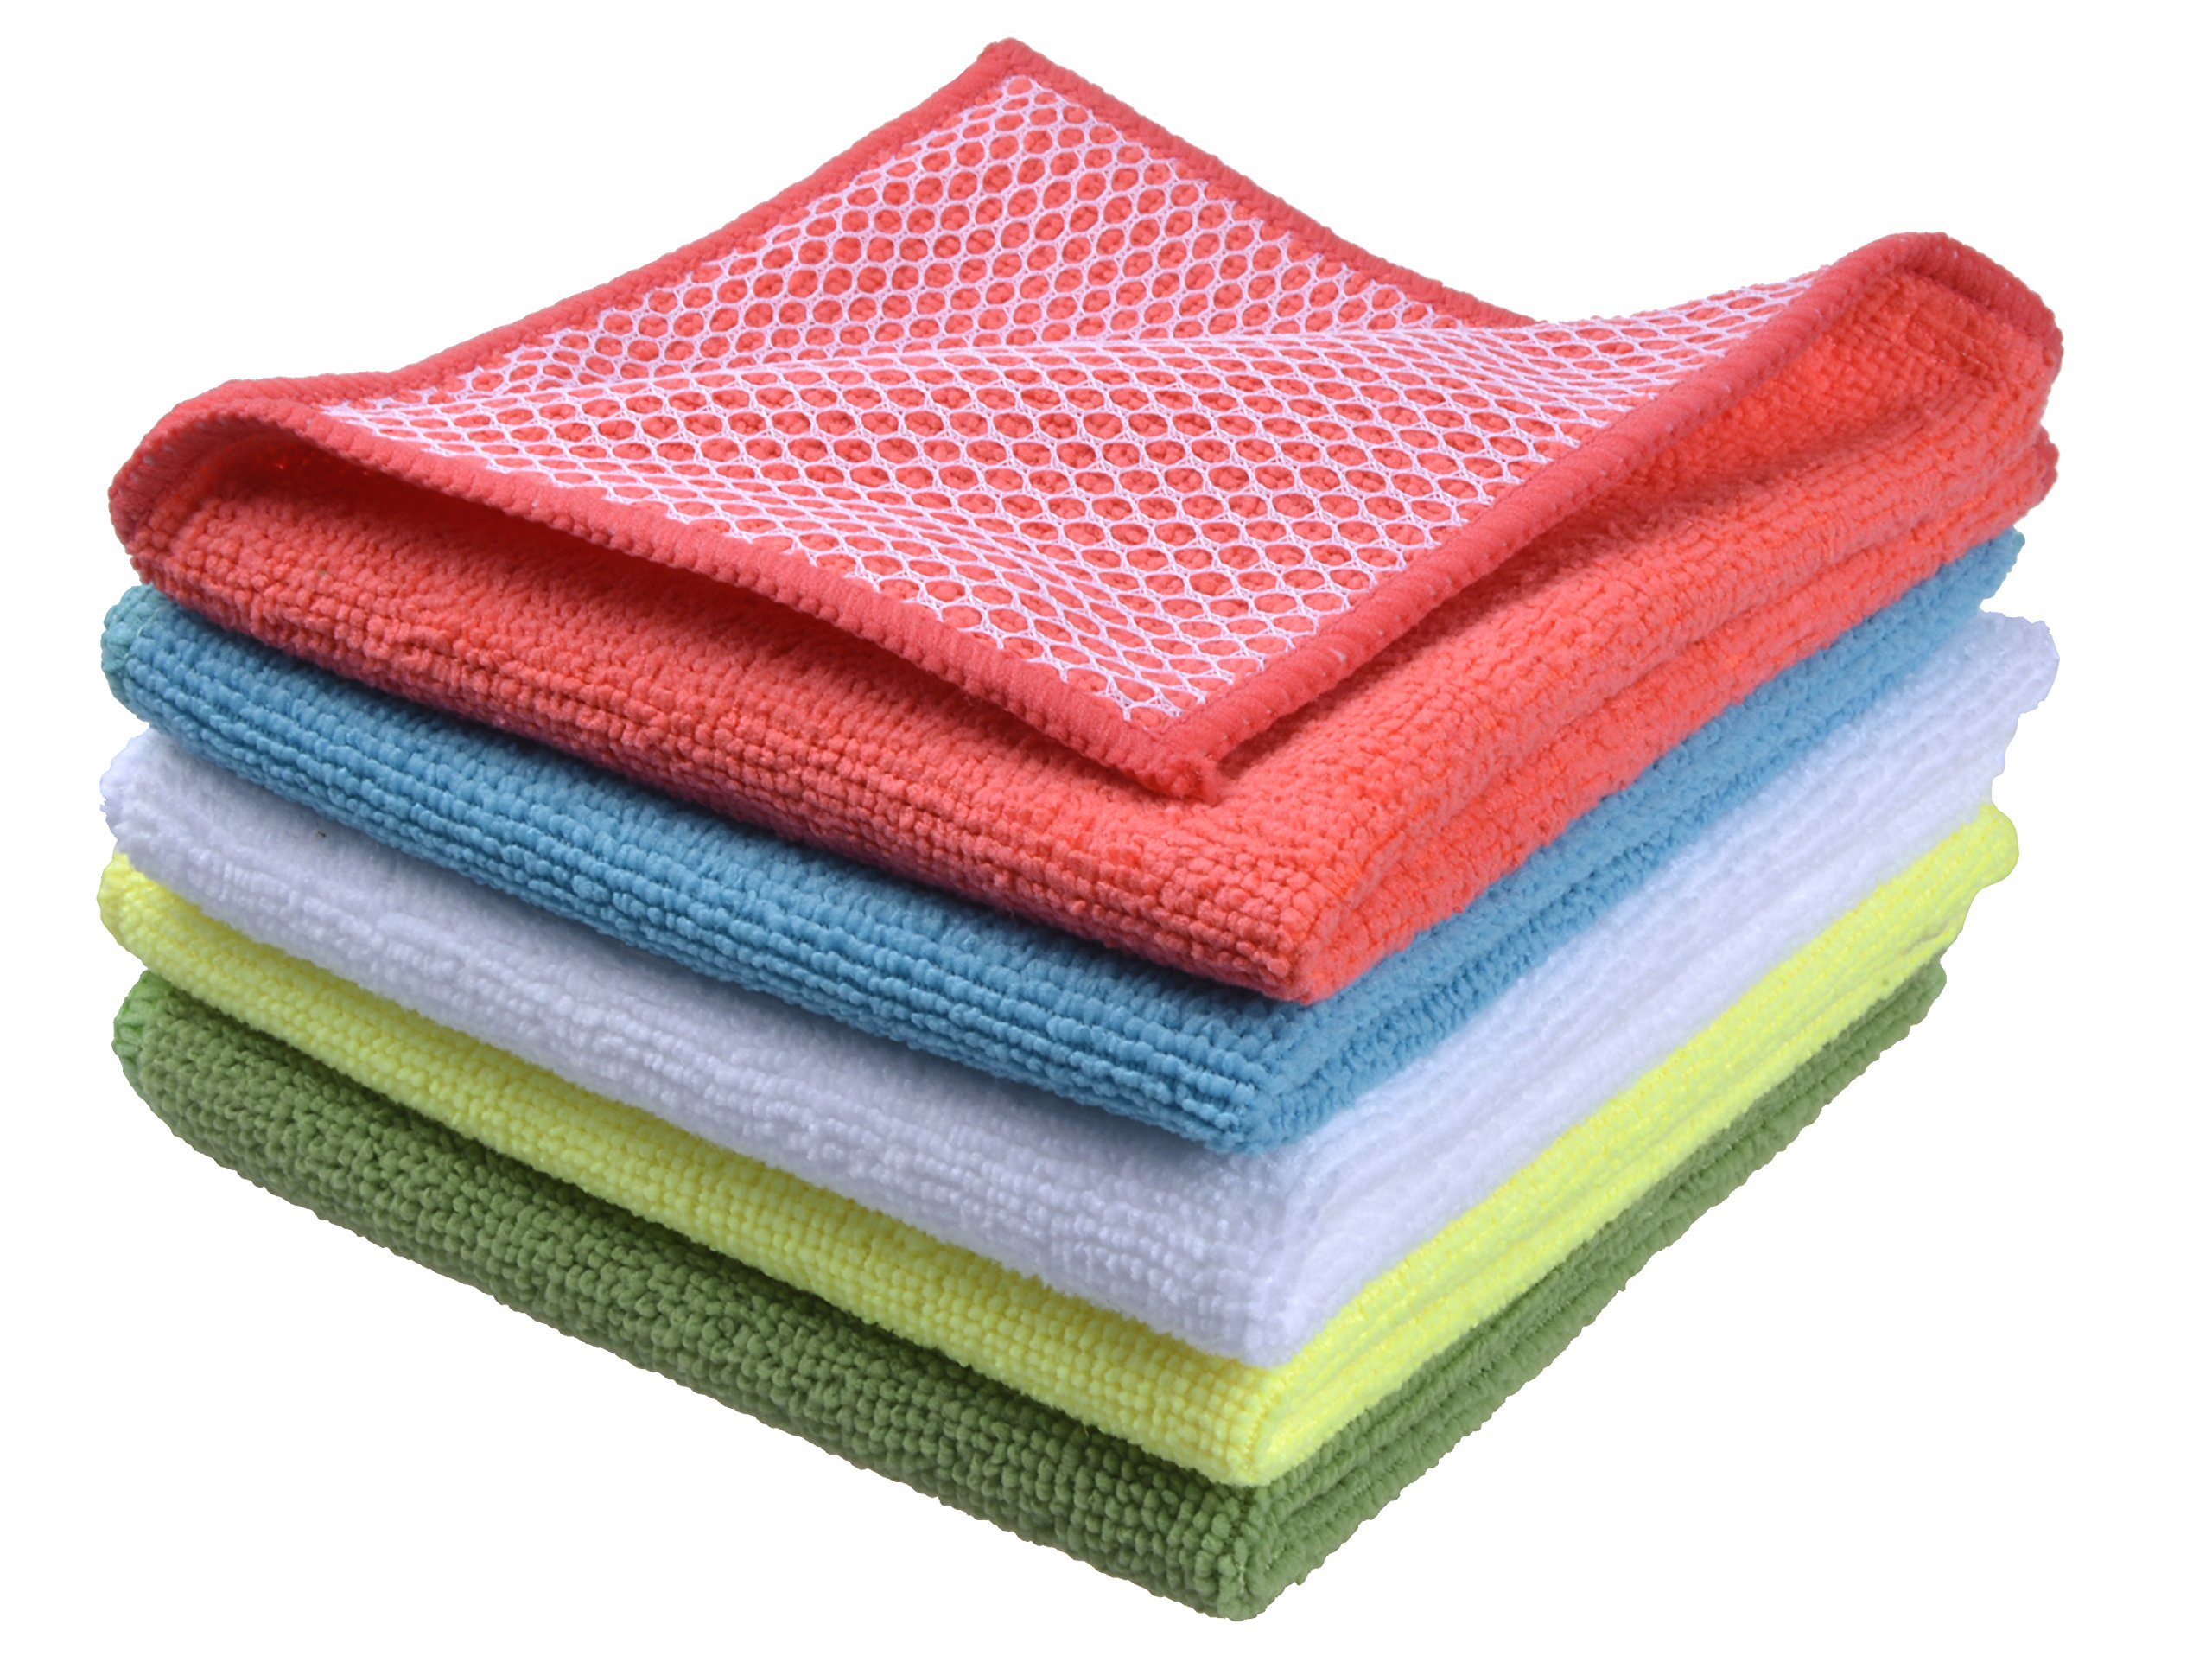 Sinland wholesale 5 color assorted Microfiber Dish Cloth Best Kitchen Cloths Cleaning Cloths Poly Scour Side 12″x12″ 9172myjoboL